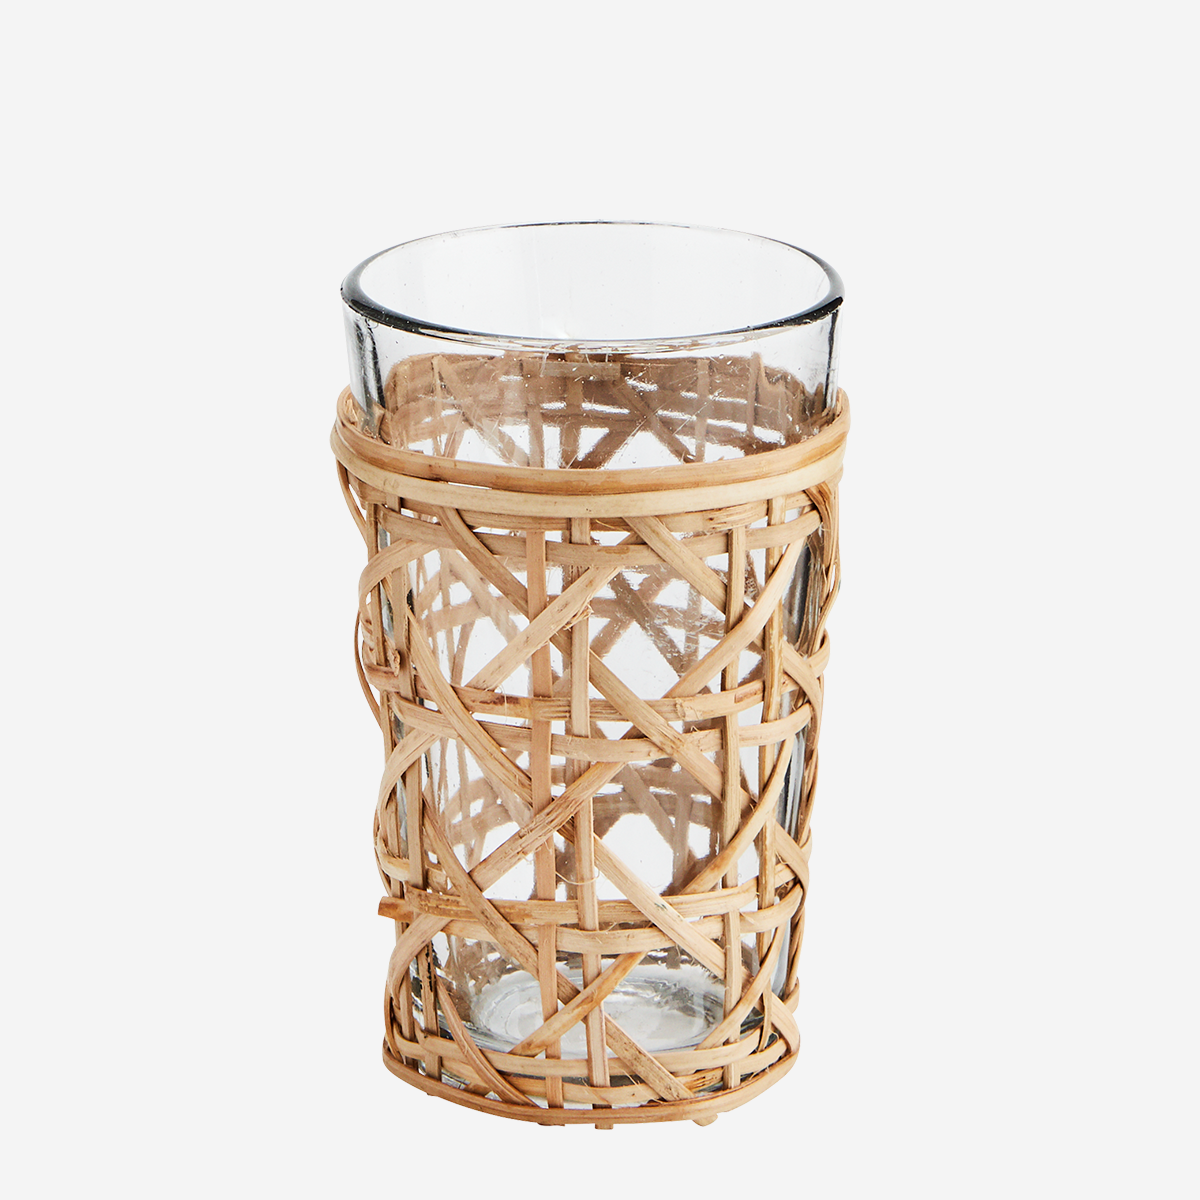 Drinking glass w/ bamboo cane